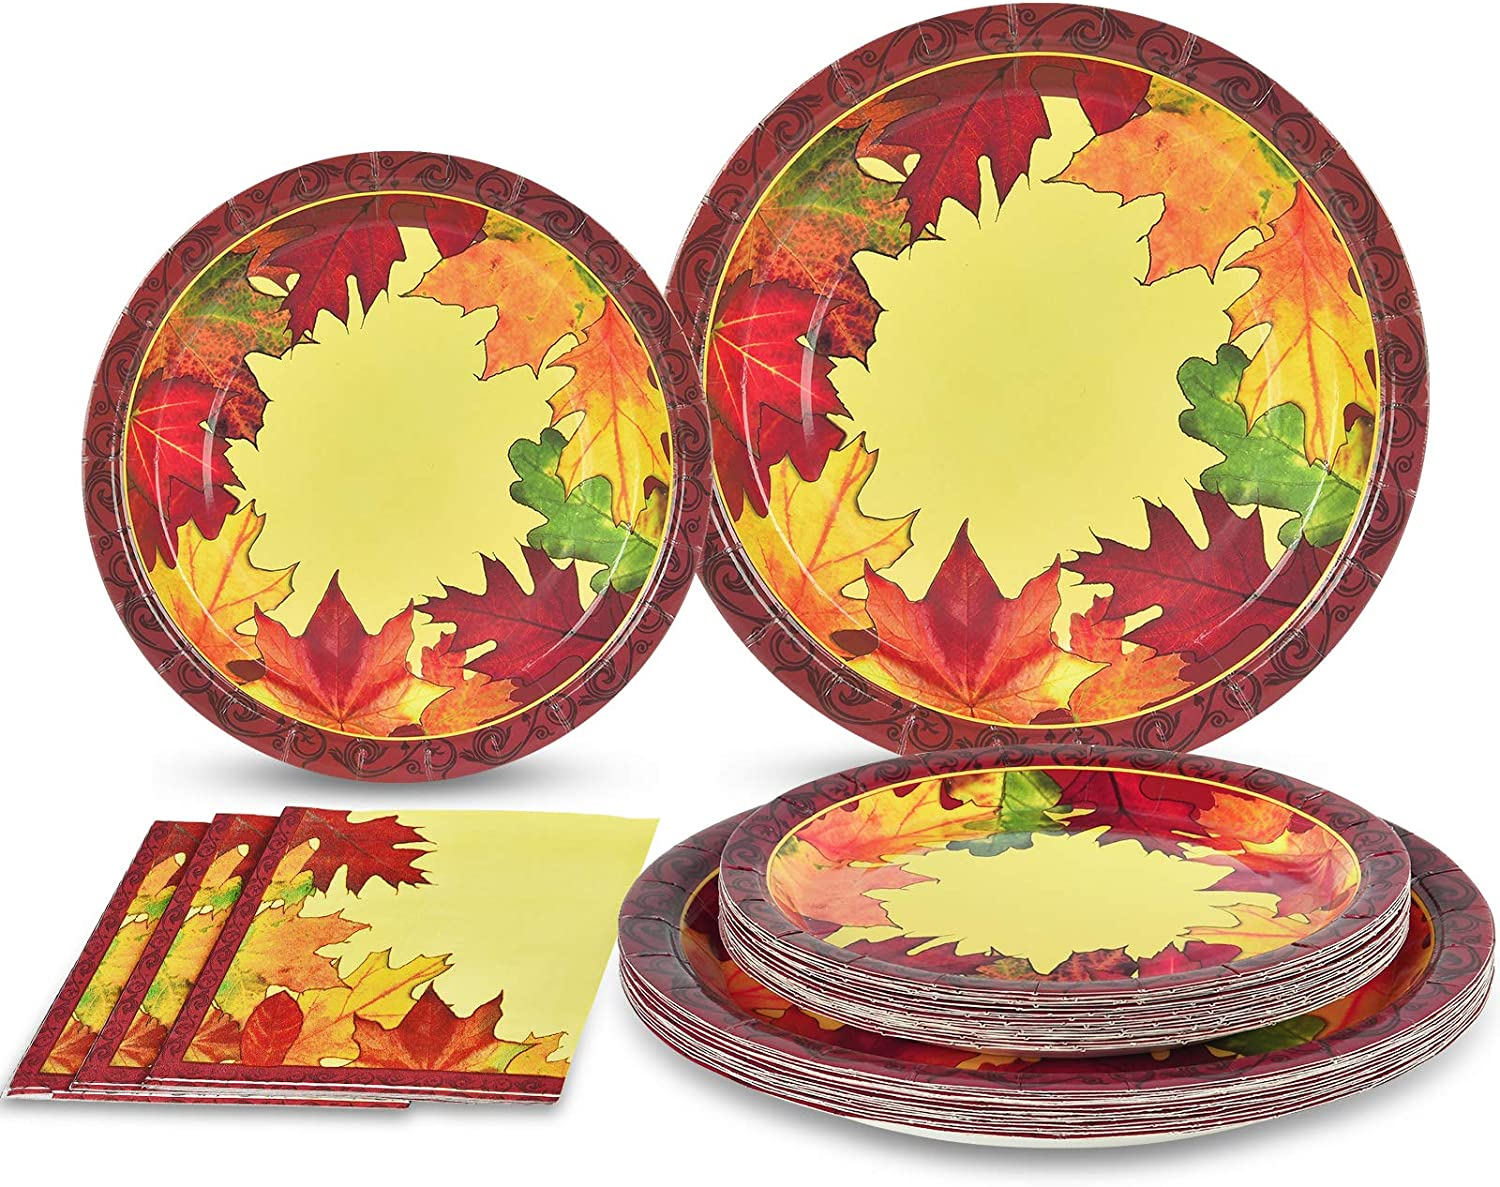 Thanksgiving Paper Plates and Napkins Disposable for 50 Guests Includes 50 9